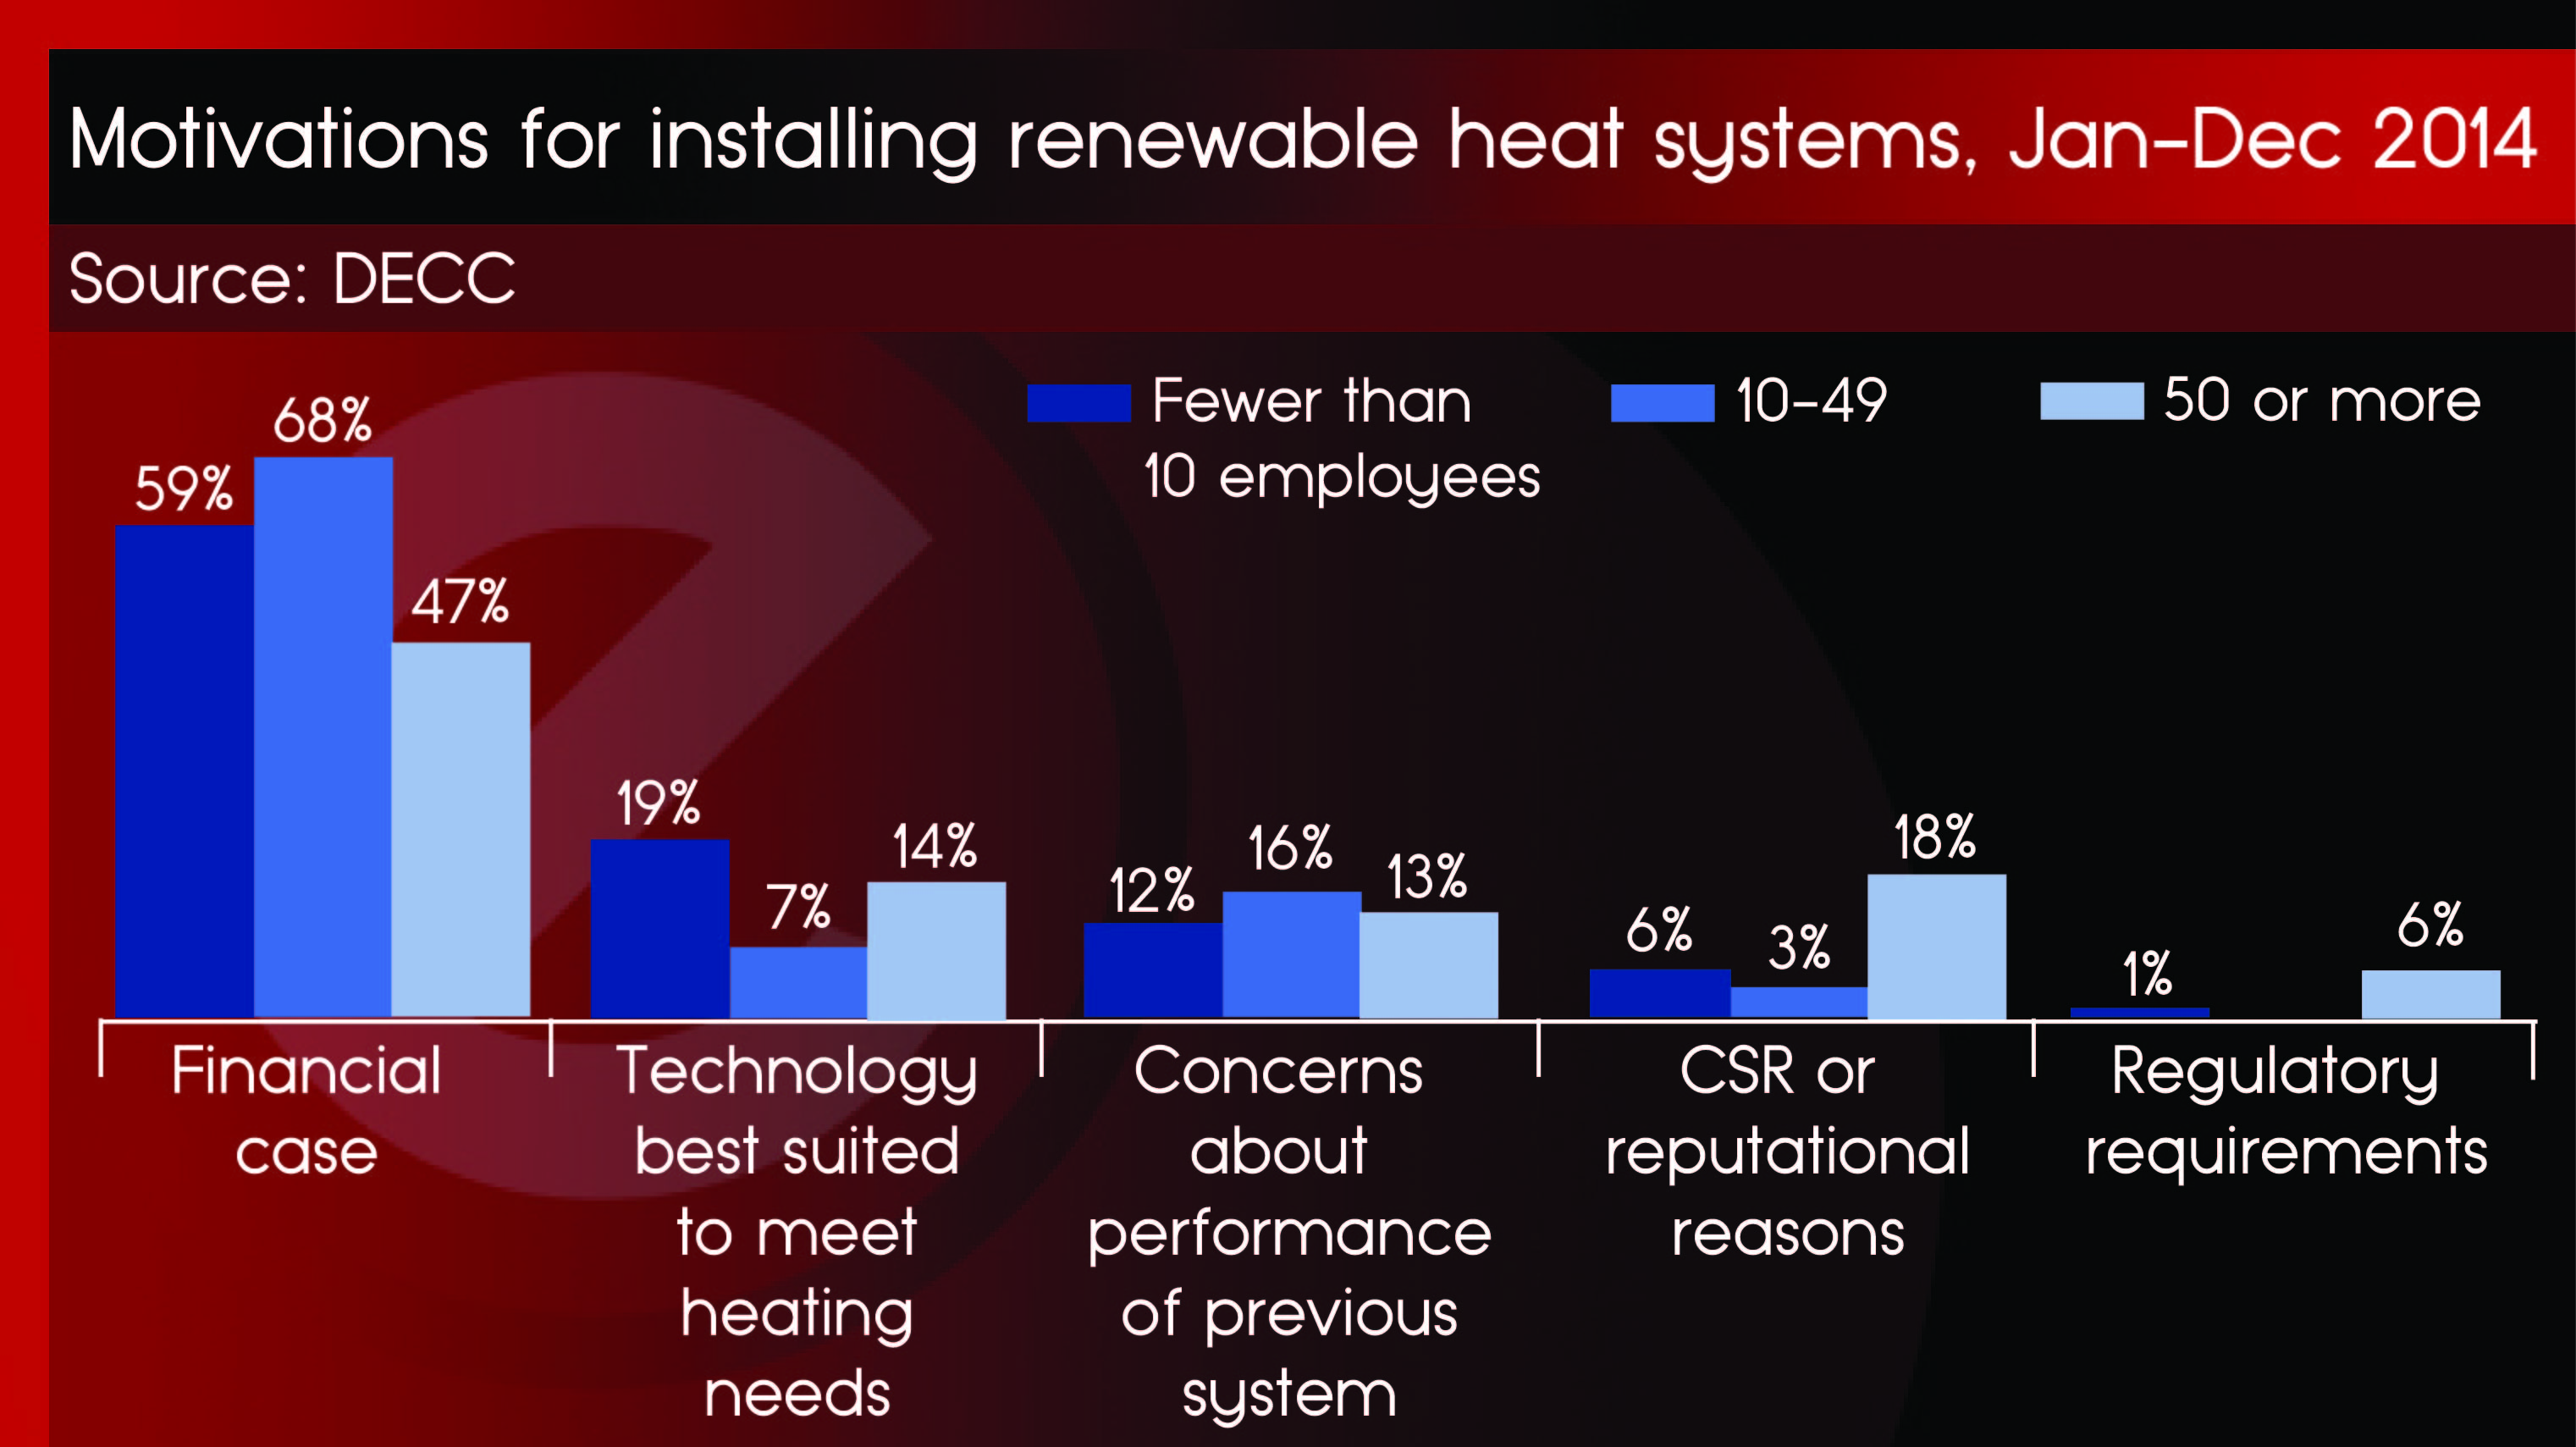 Motivations to install heat systems